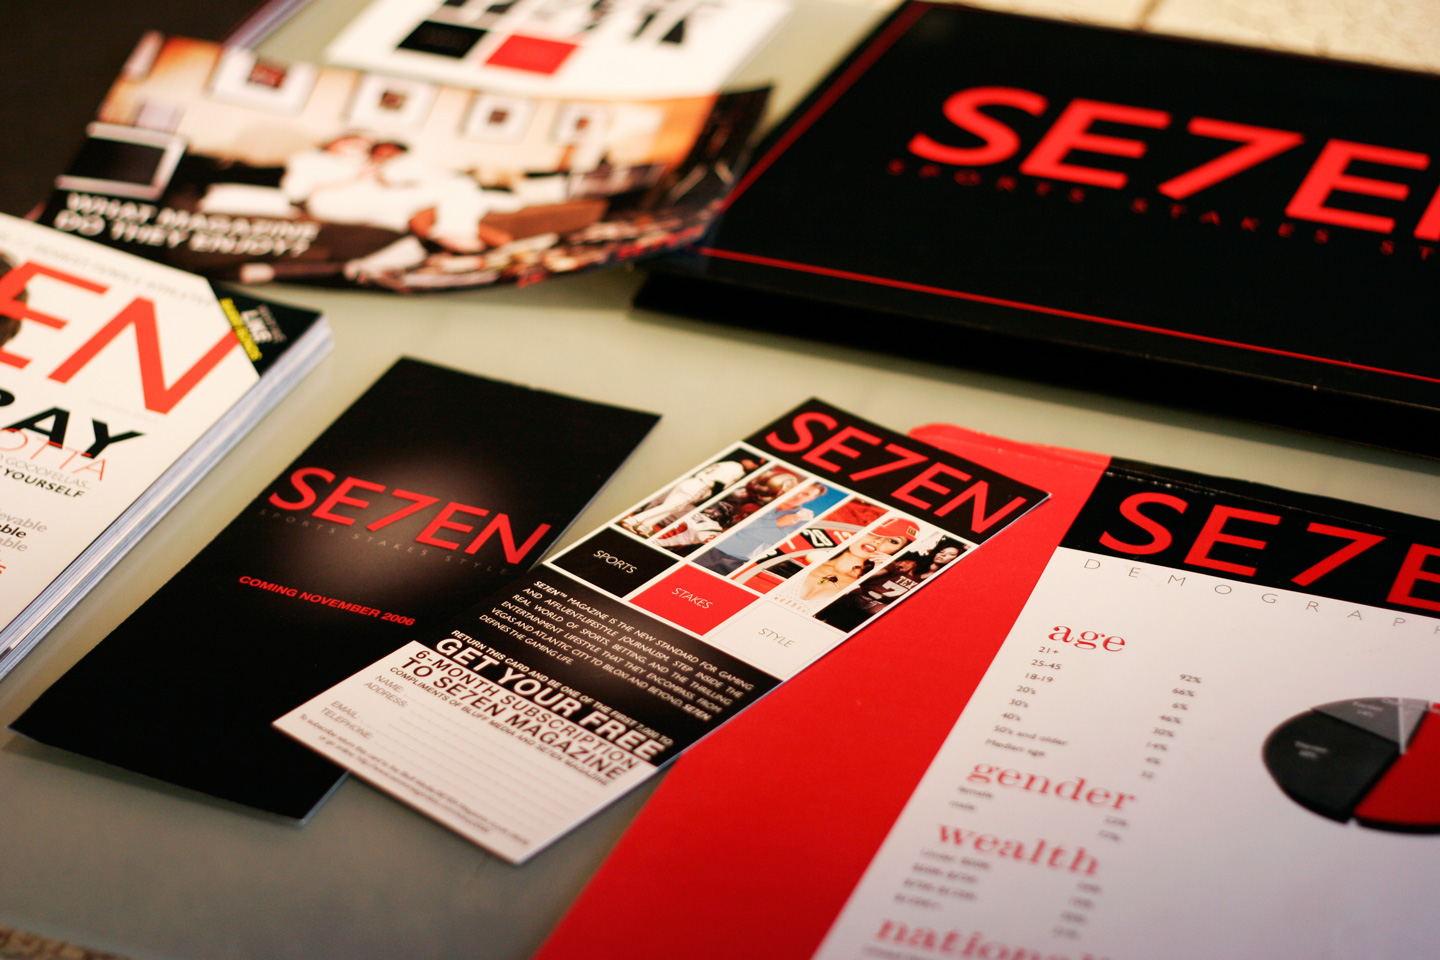 Stack of SE7EN magazines in black and red